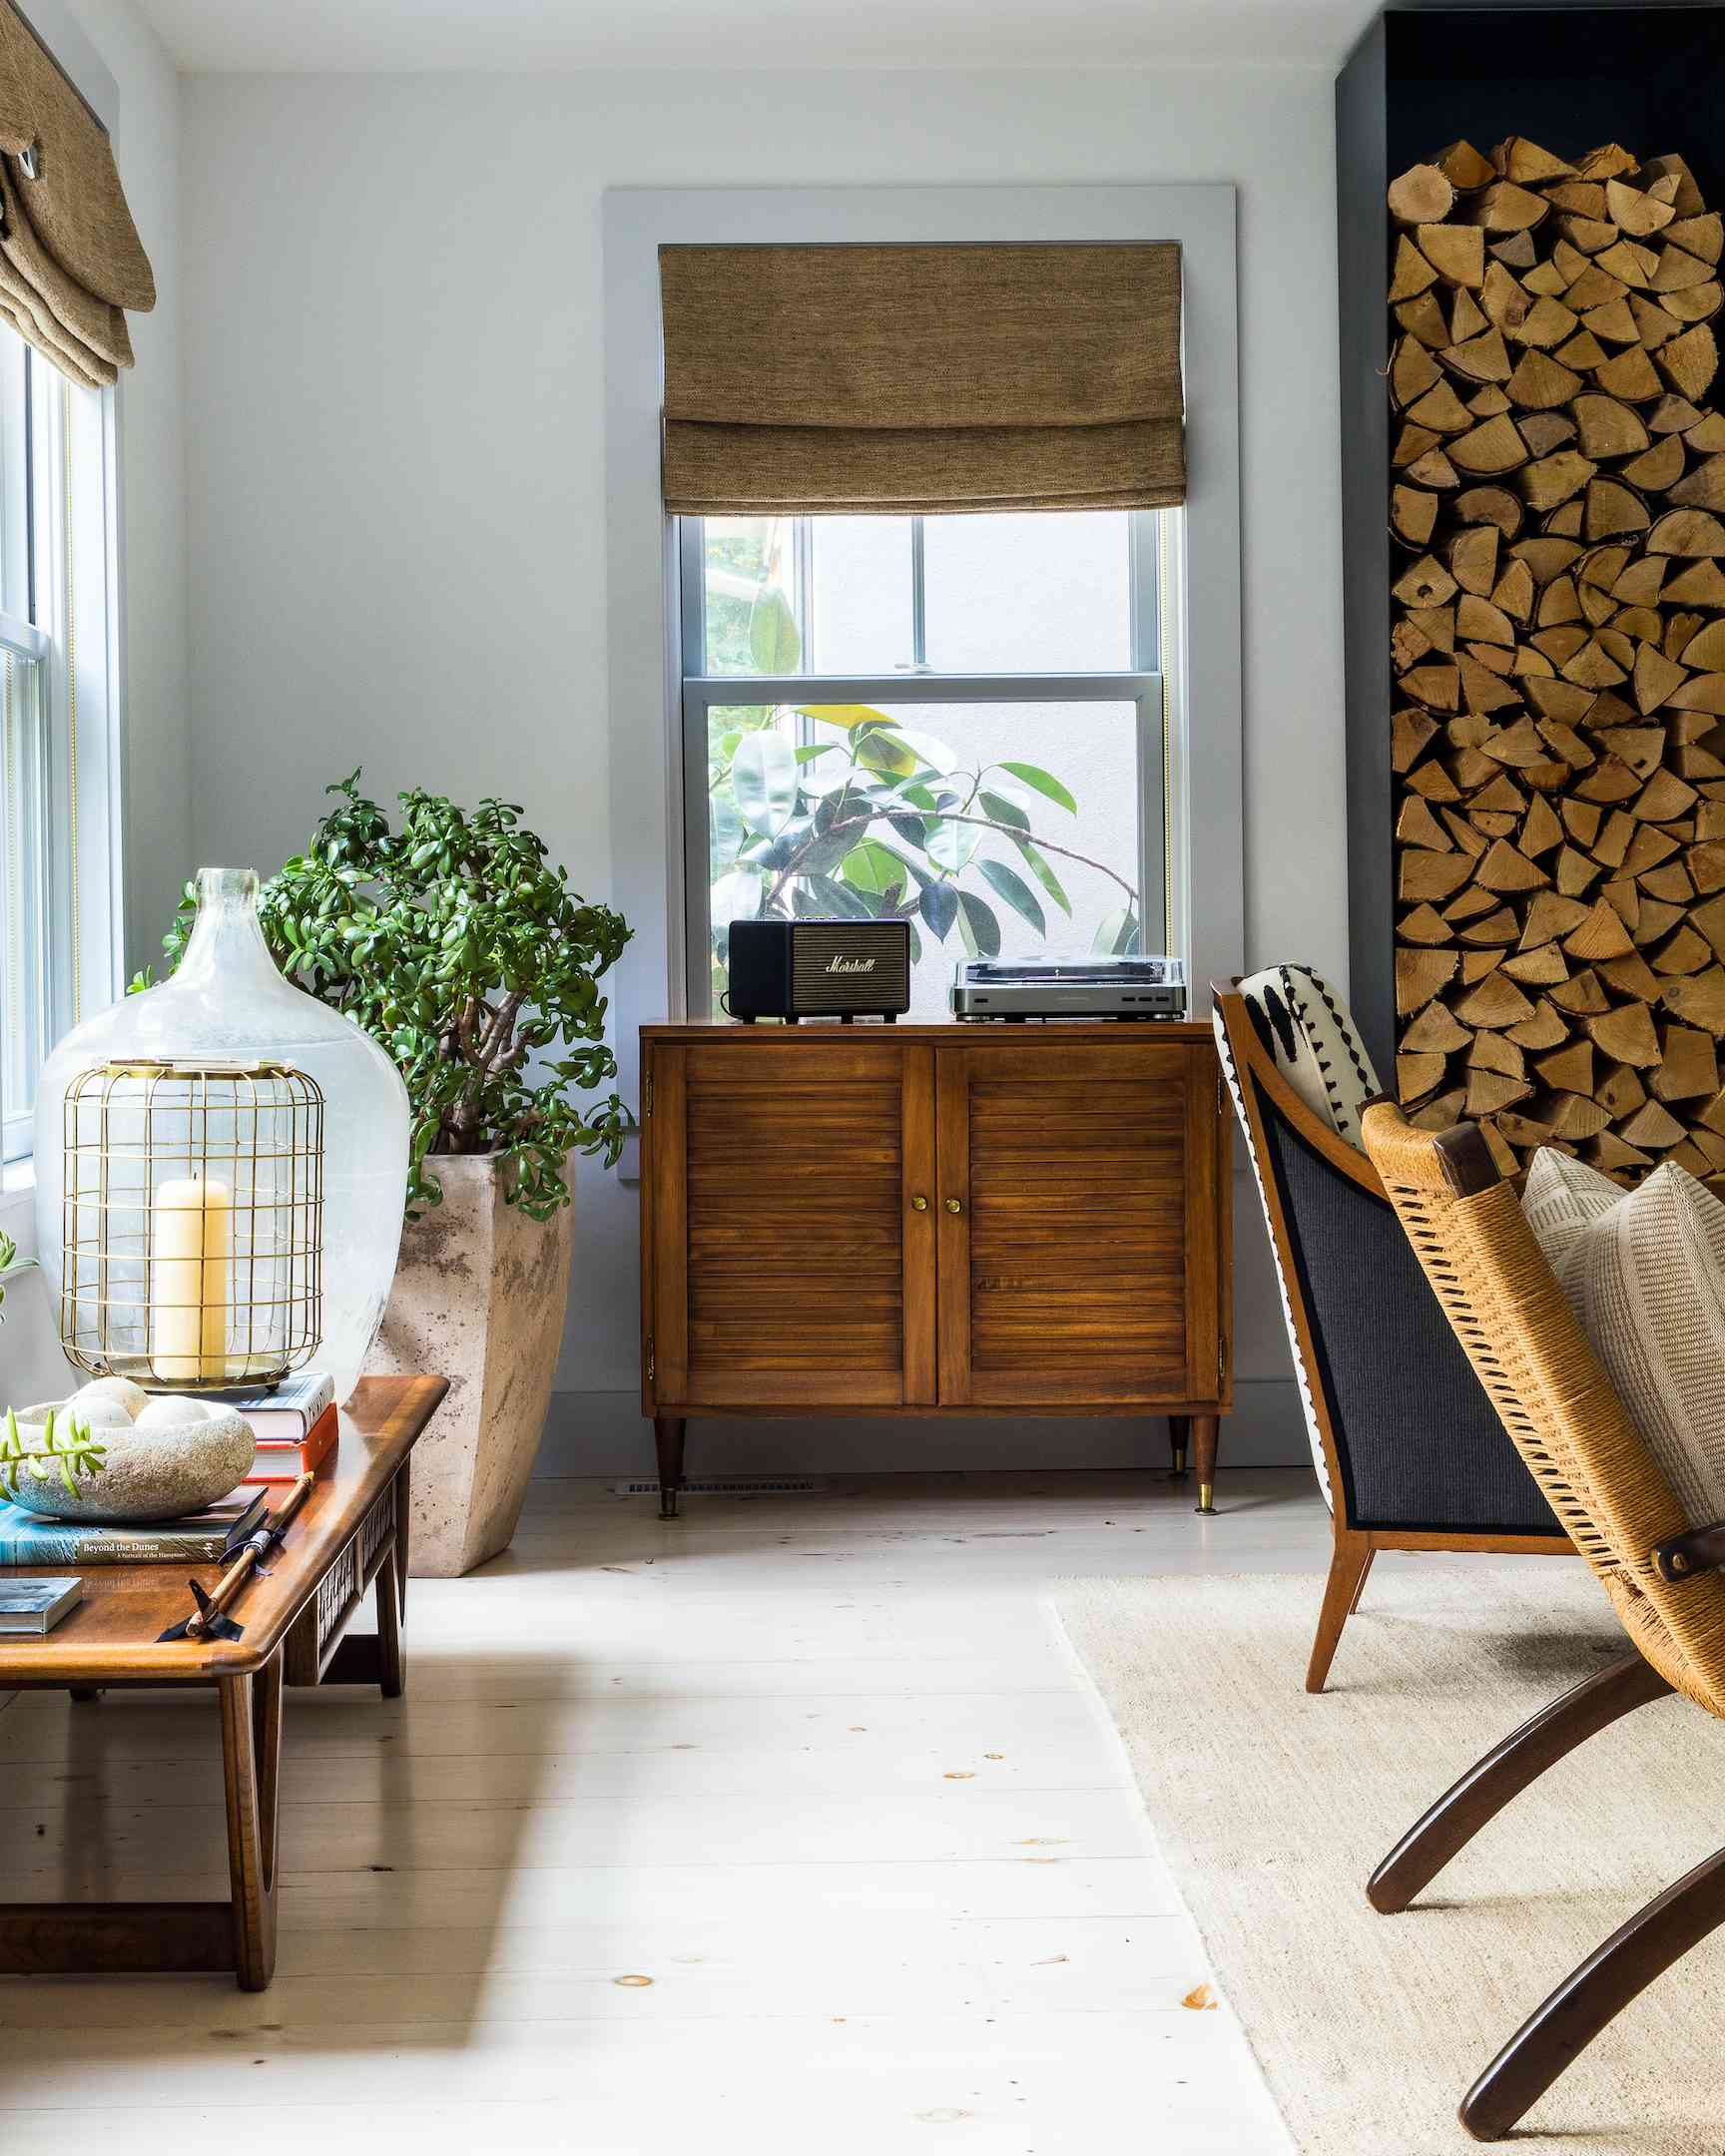 Living room with stack of wood and wooden dresser.